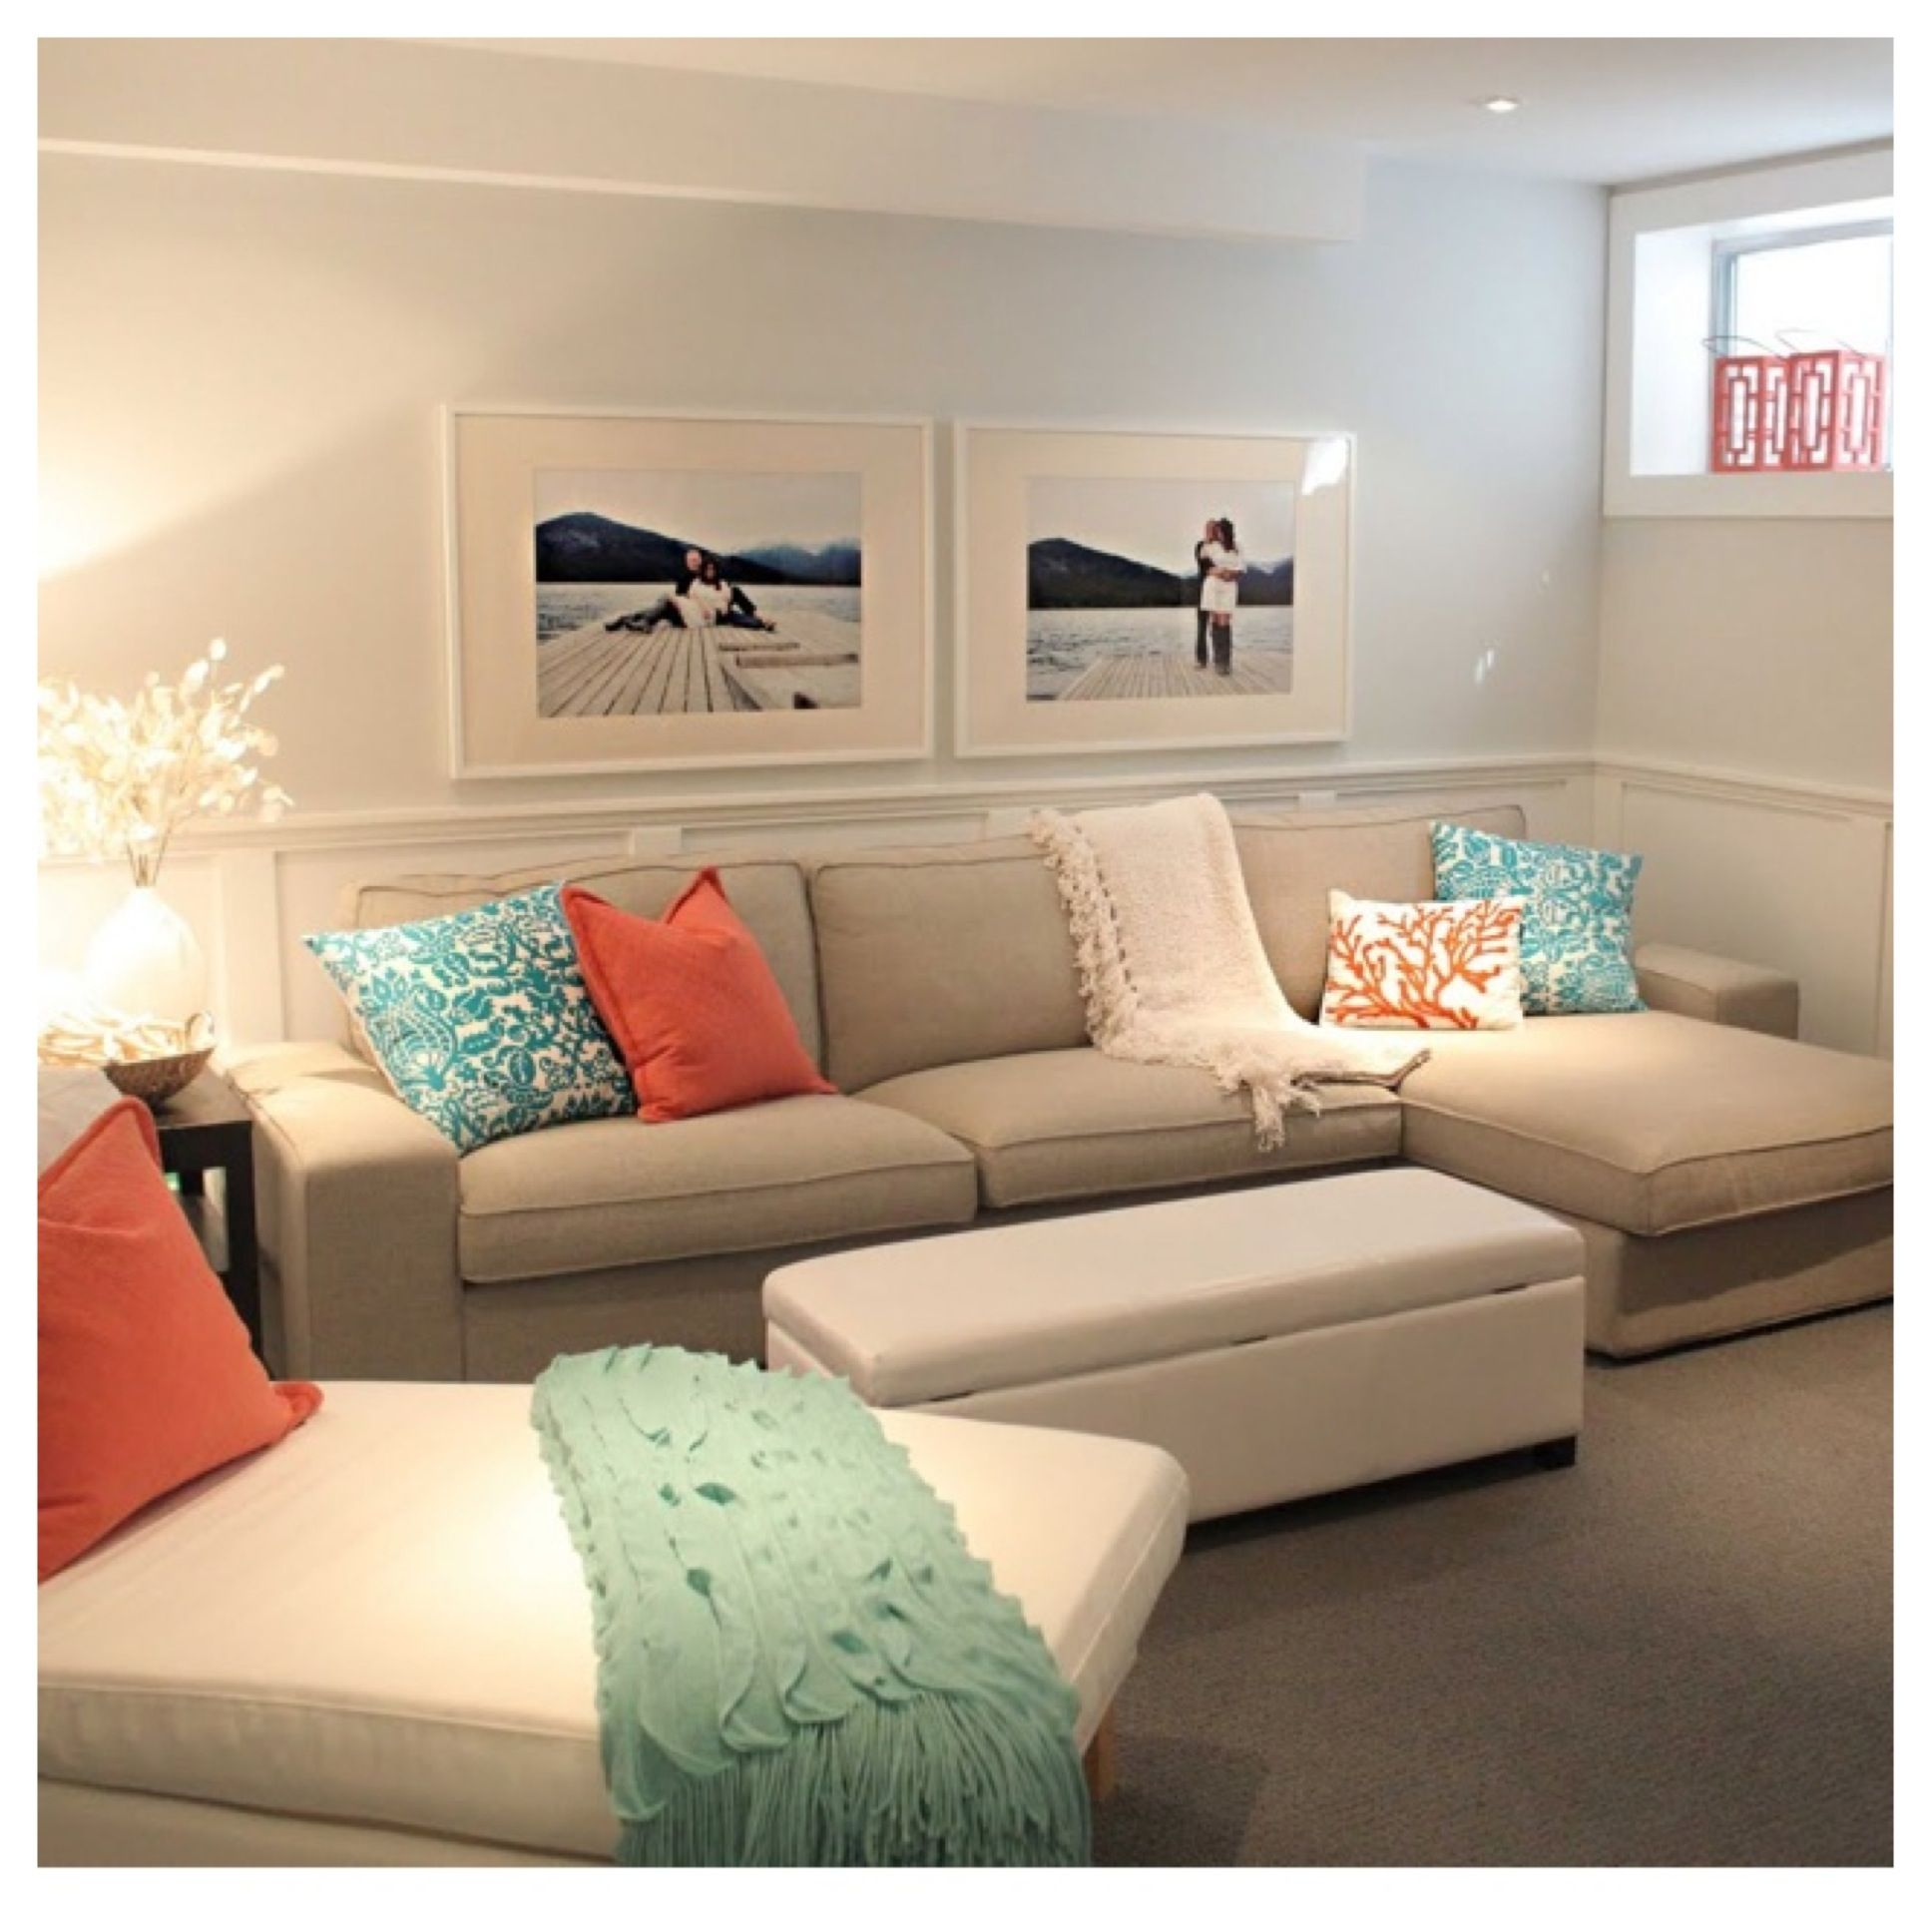 Teal And Orange With Beige Furniture And Black/white